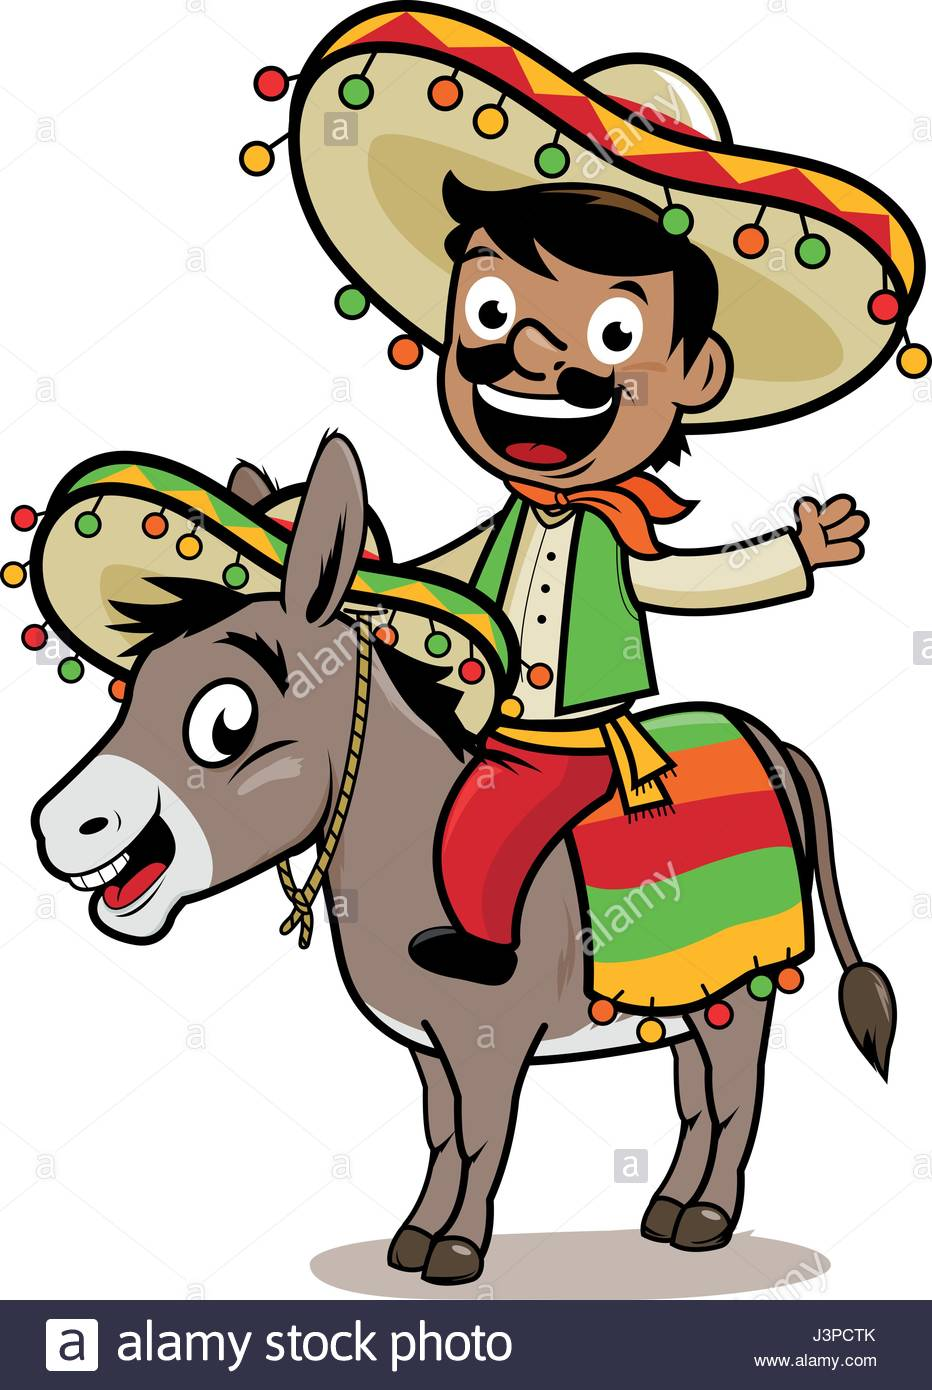 932x1390 Mexican Man Riding A Donkey Stock Vector Art Amp Illustration